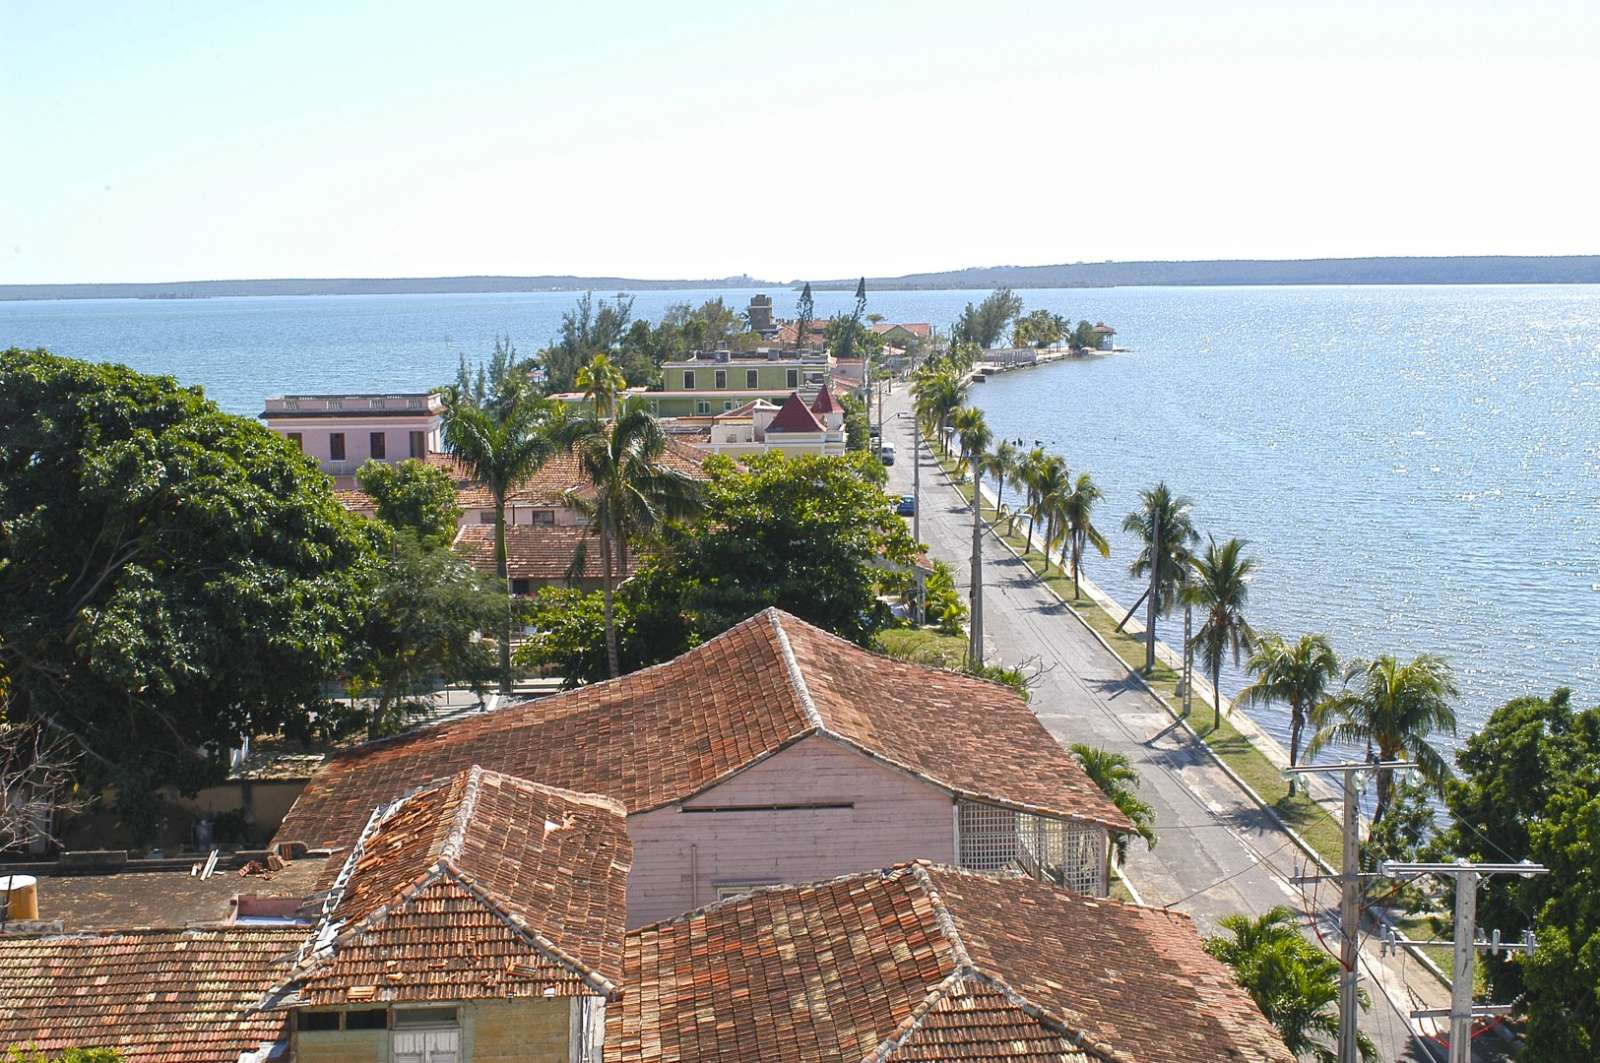 Aerial view of Punta Gorda, Cienfuegos